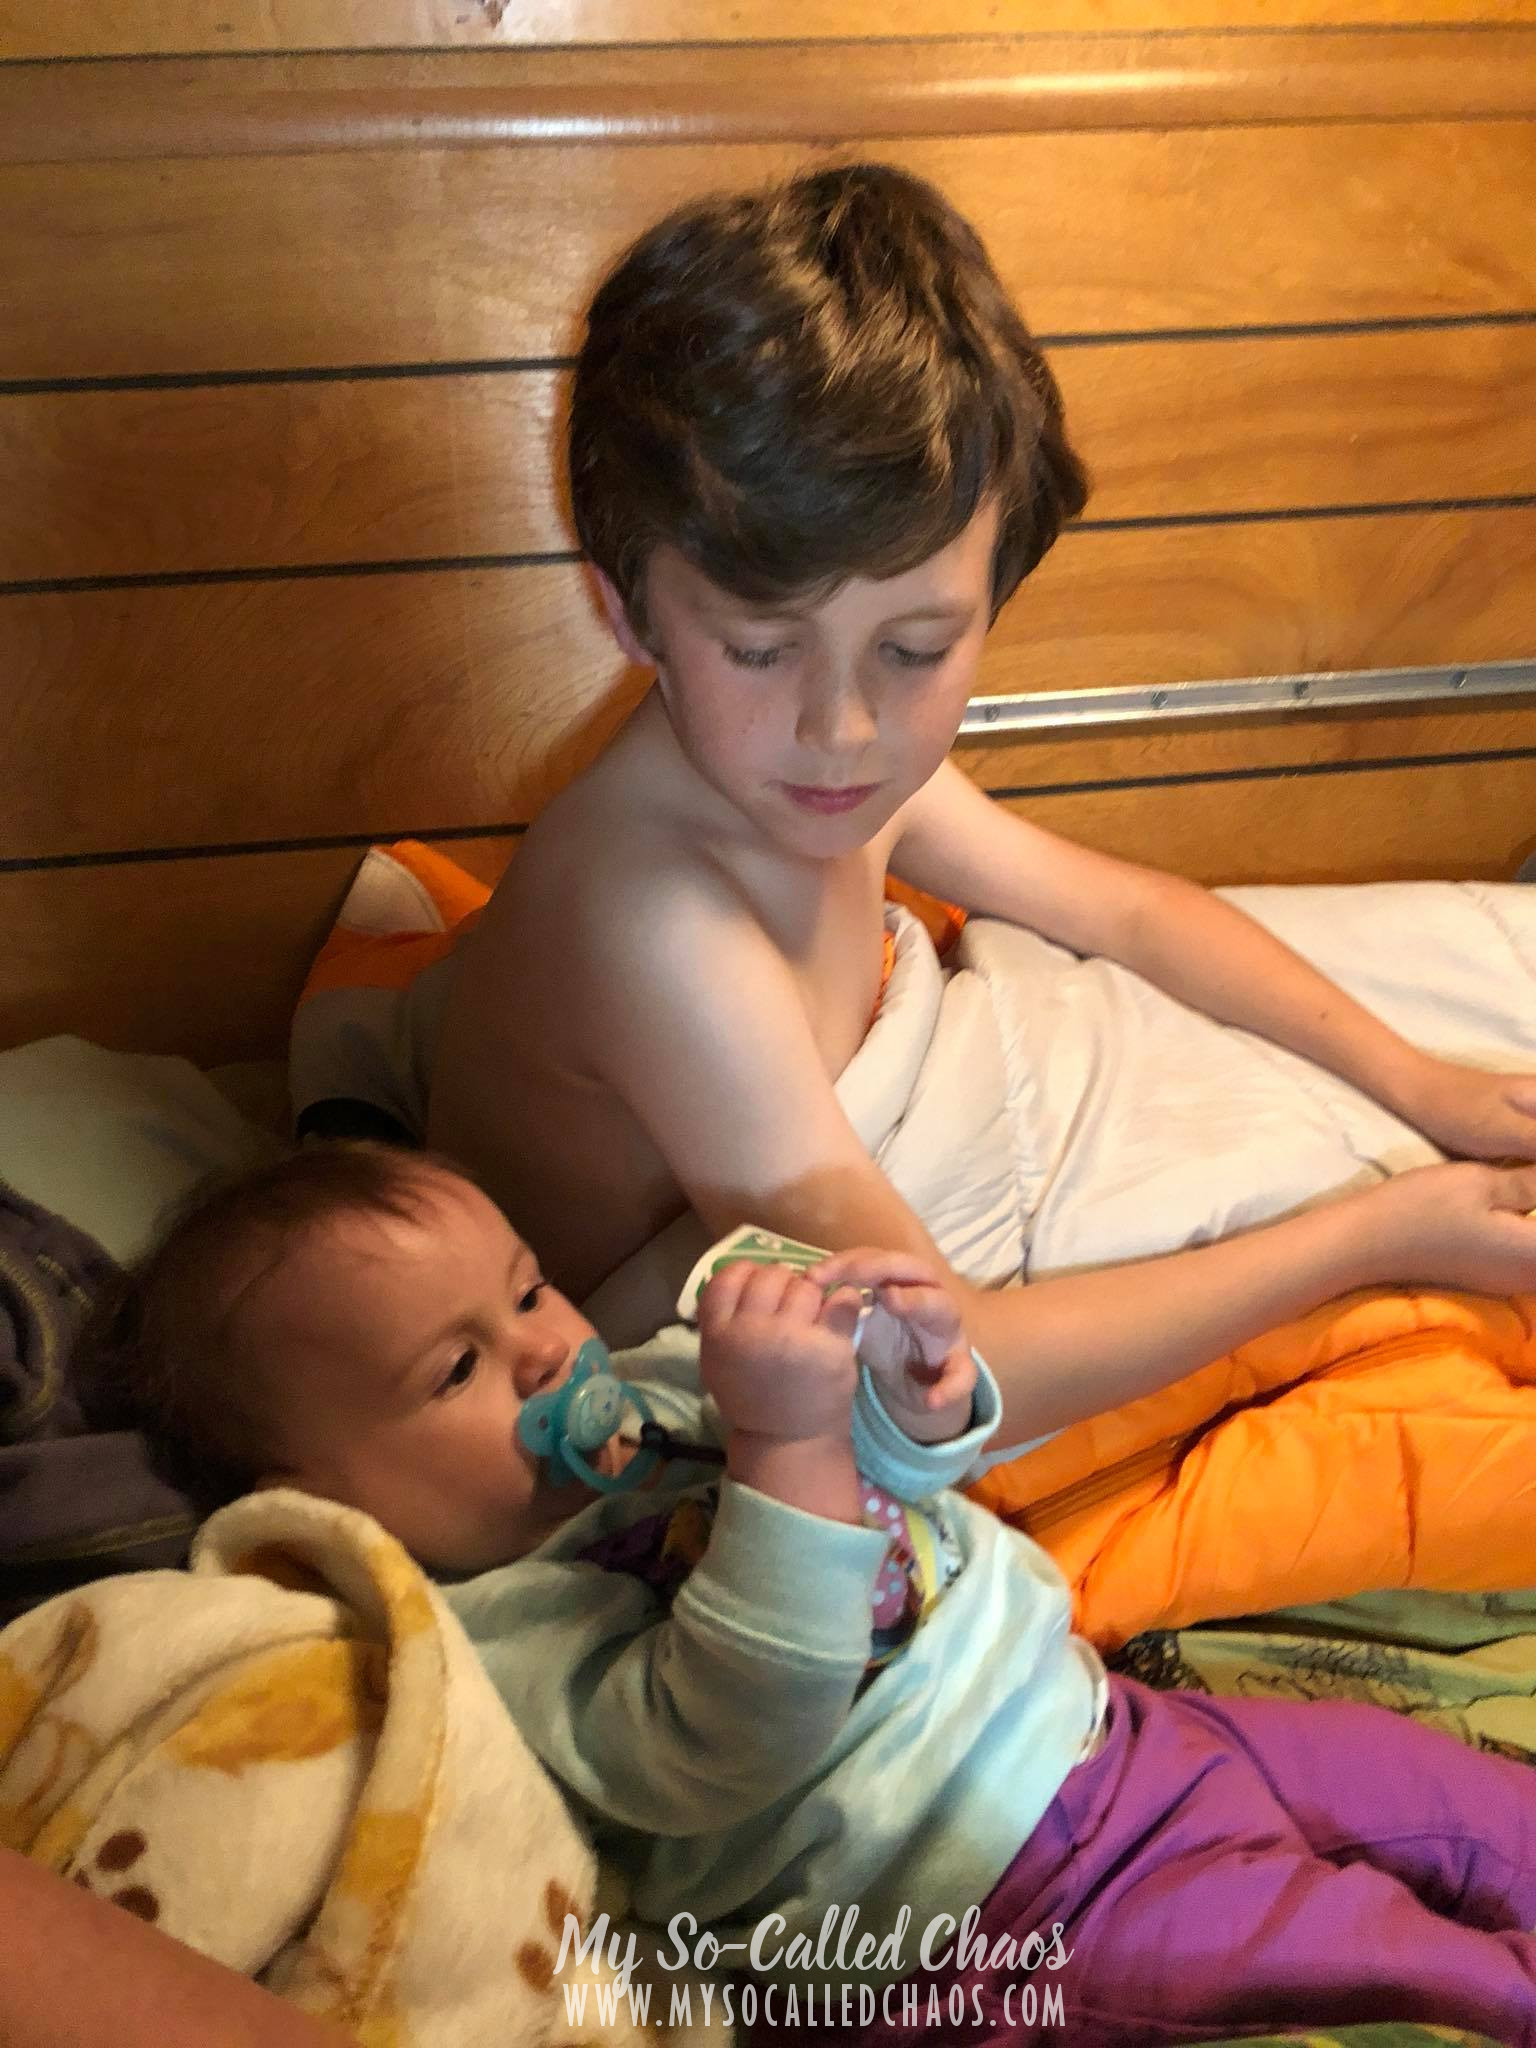 9 year old boy watches his 6 month old sister hold Uno cards.